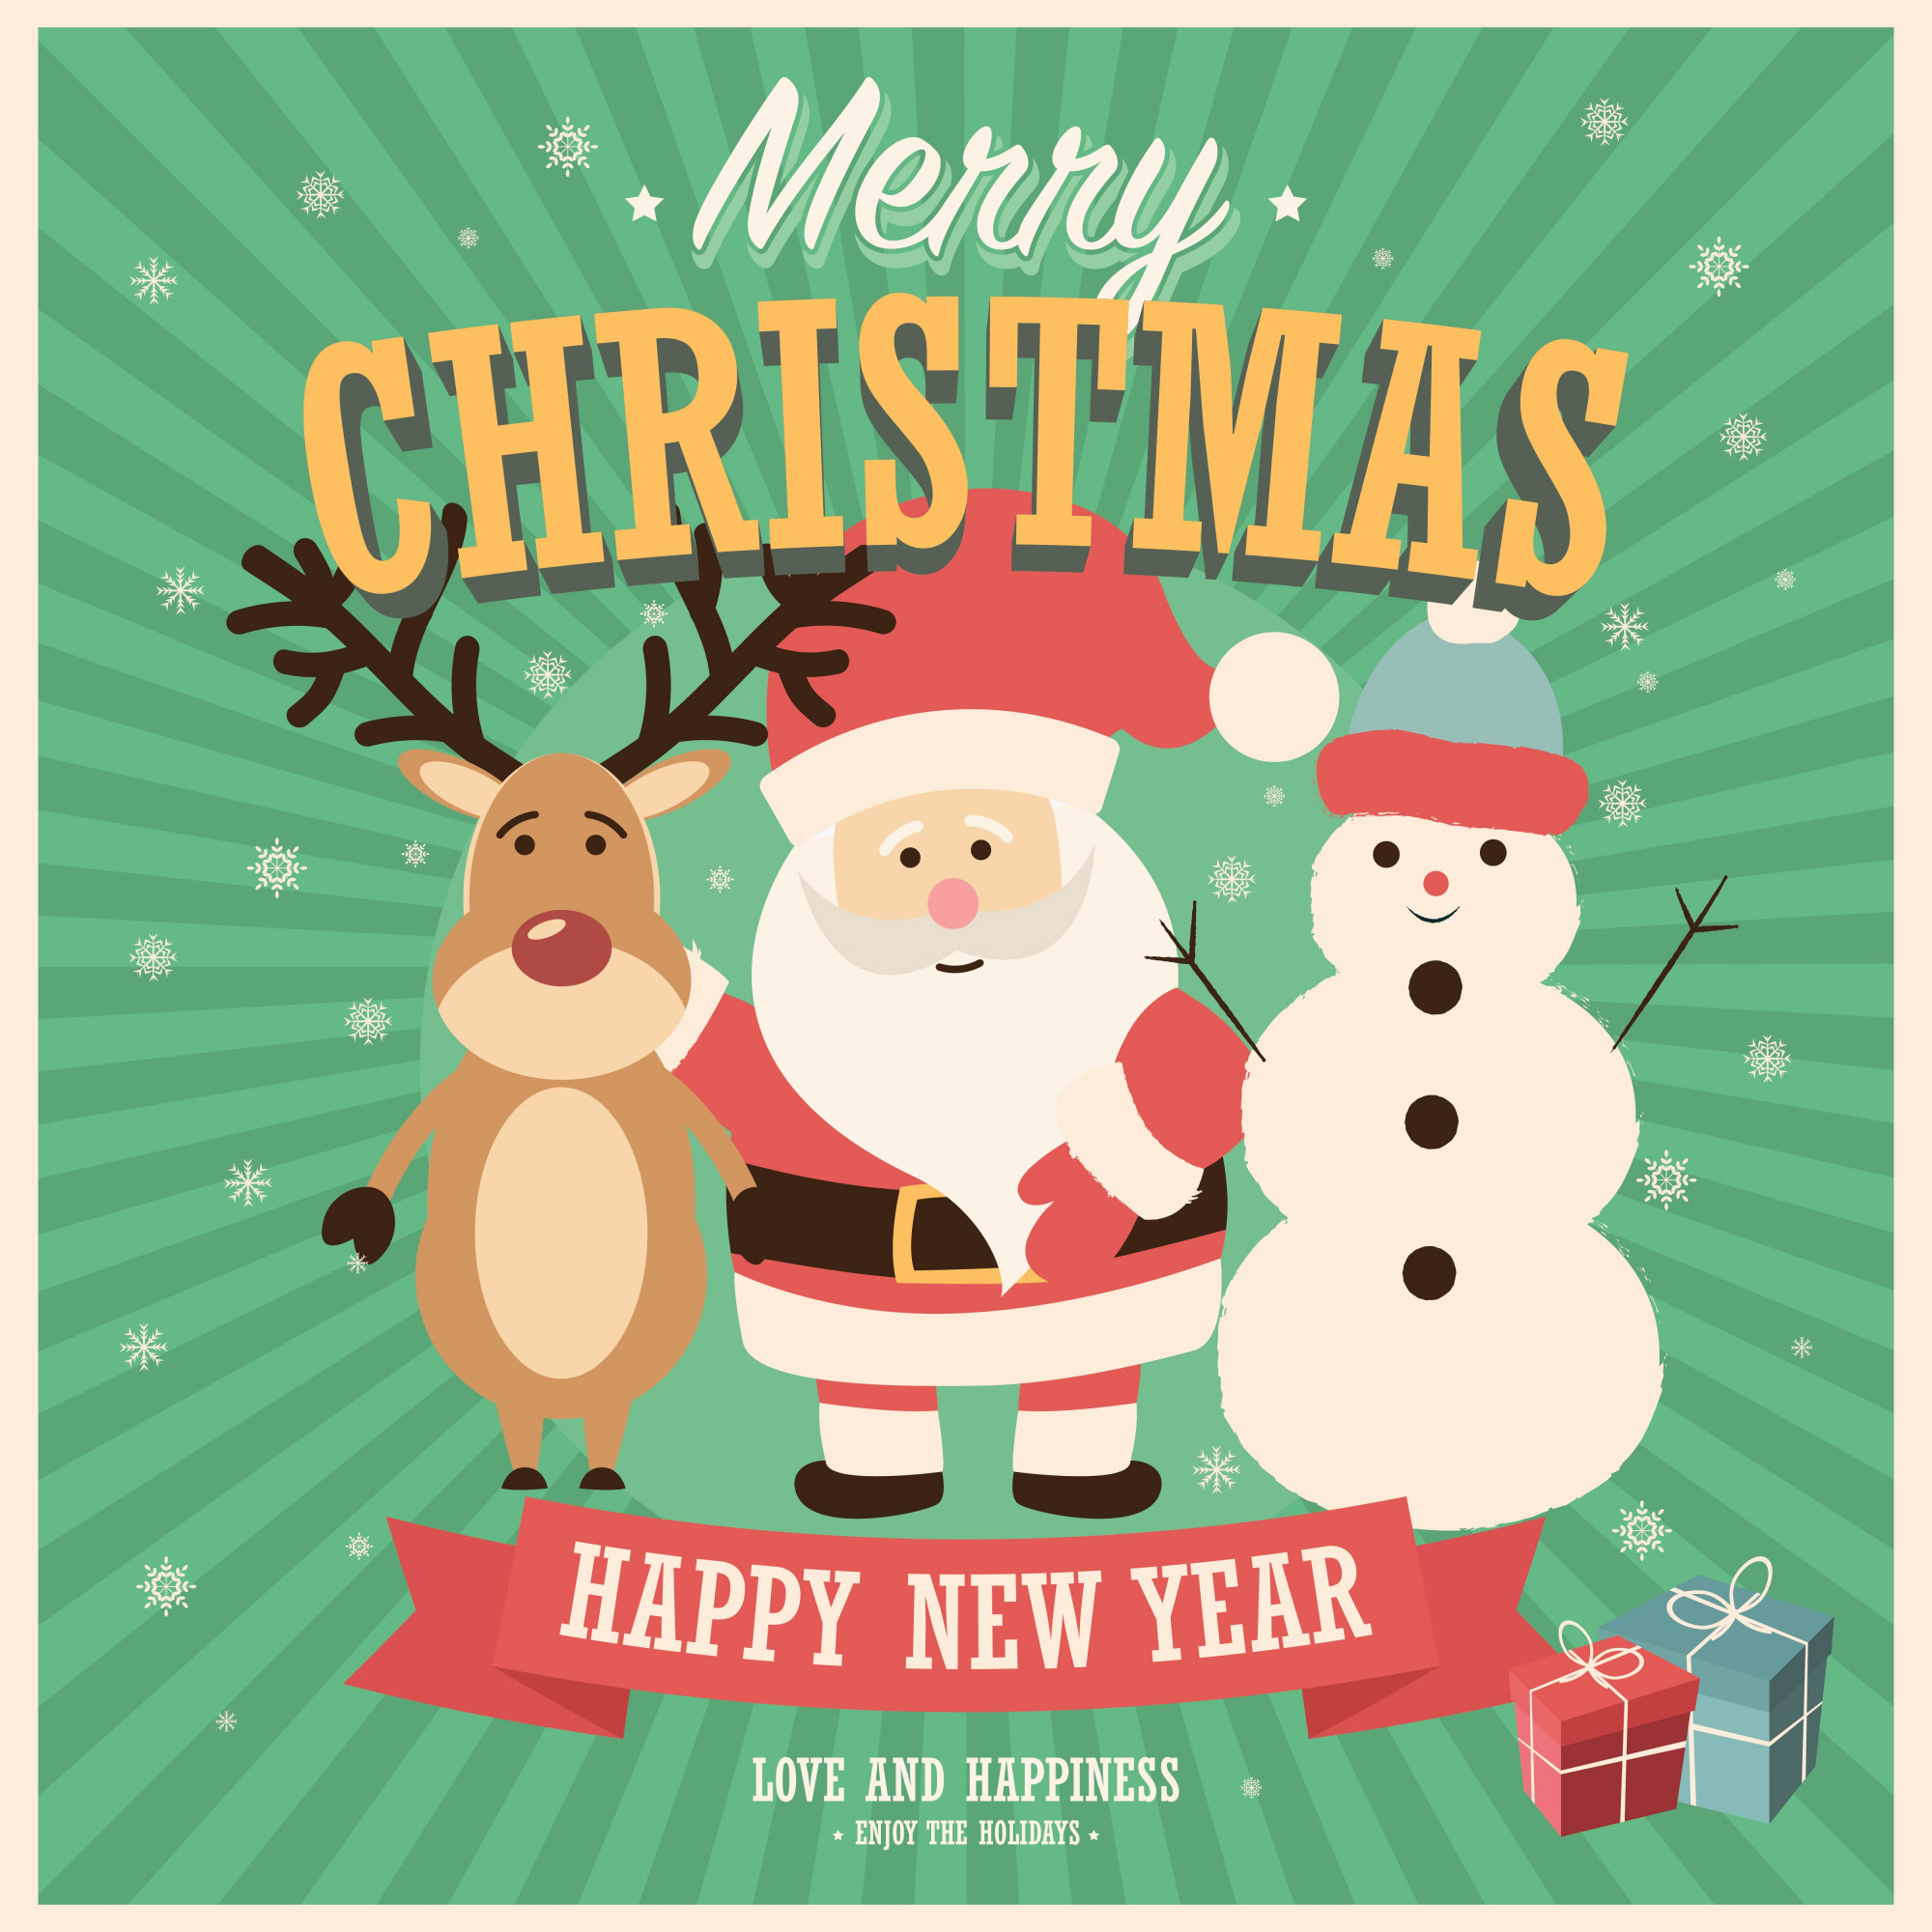 Merry Christmas card with Santa Claus, snowman